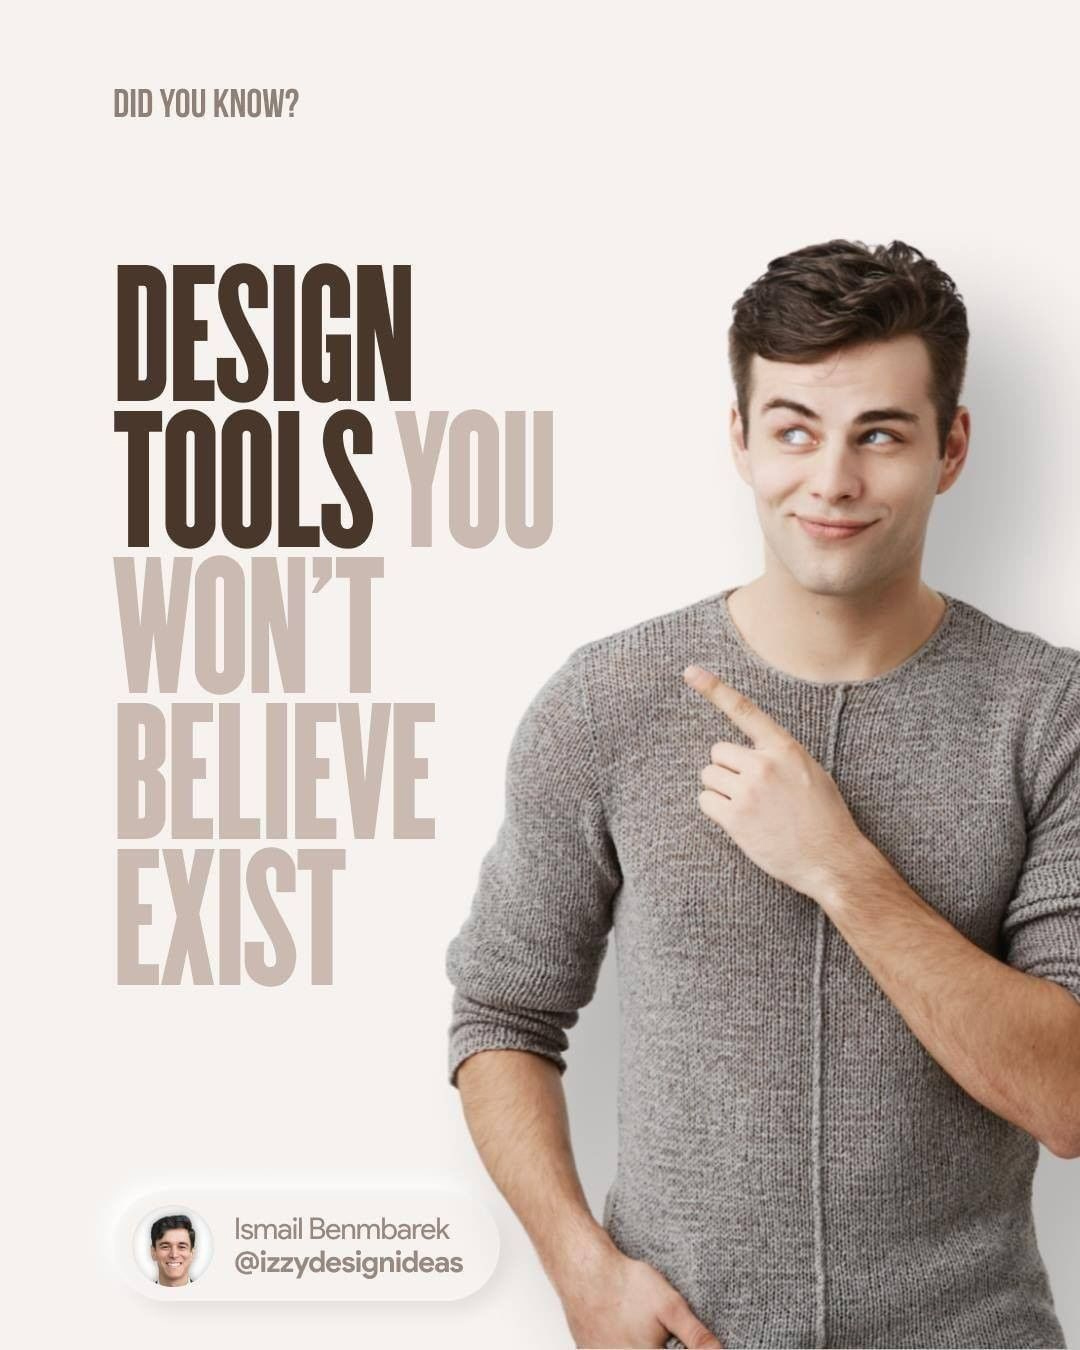 Design tools you won't believe exist